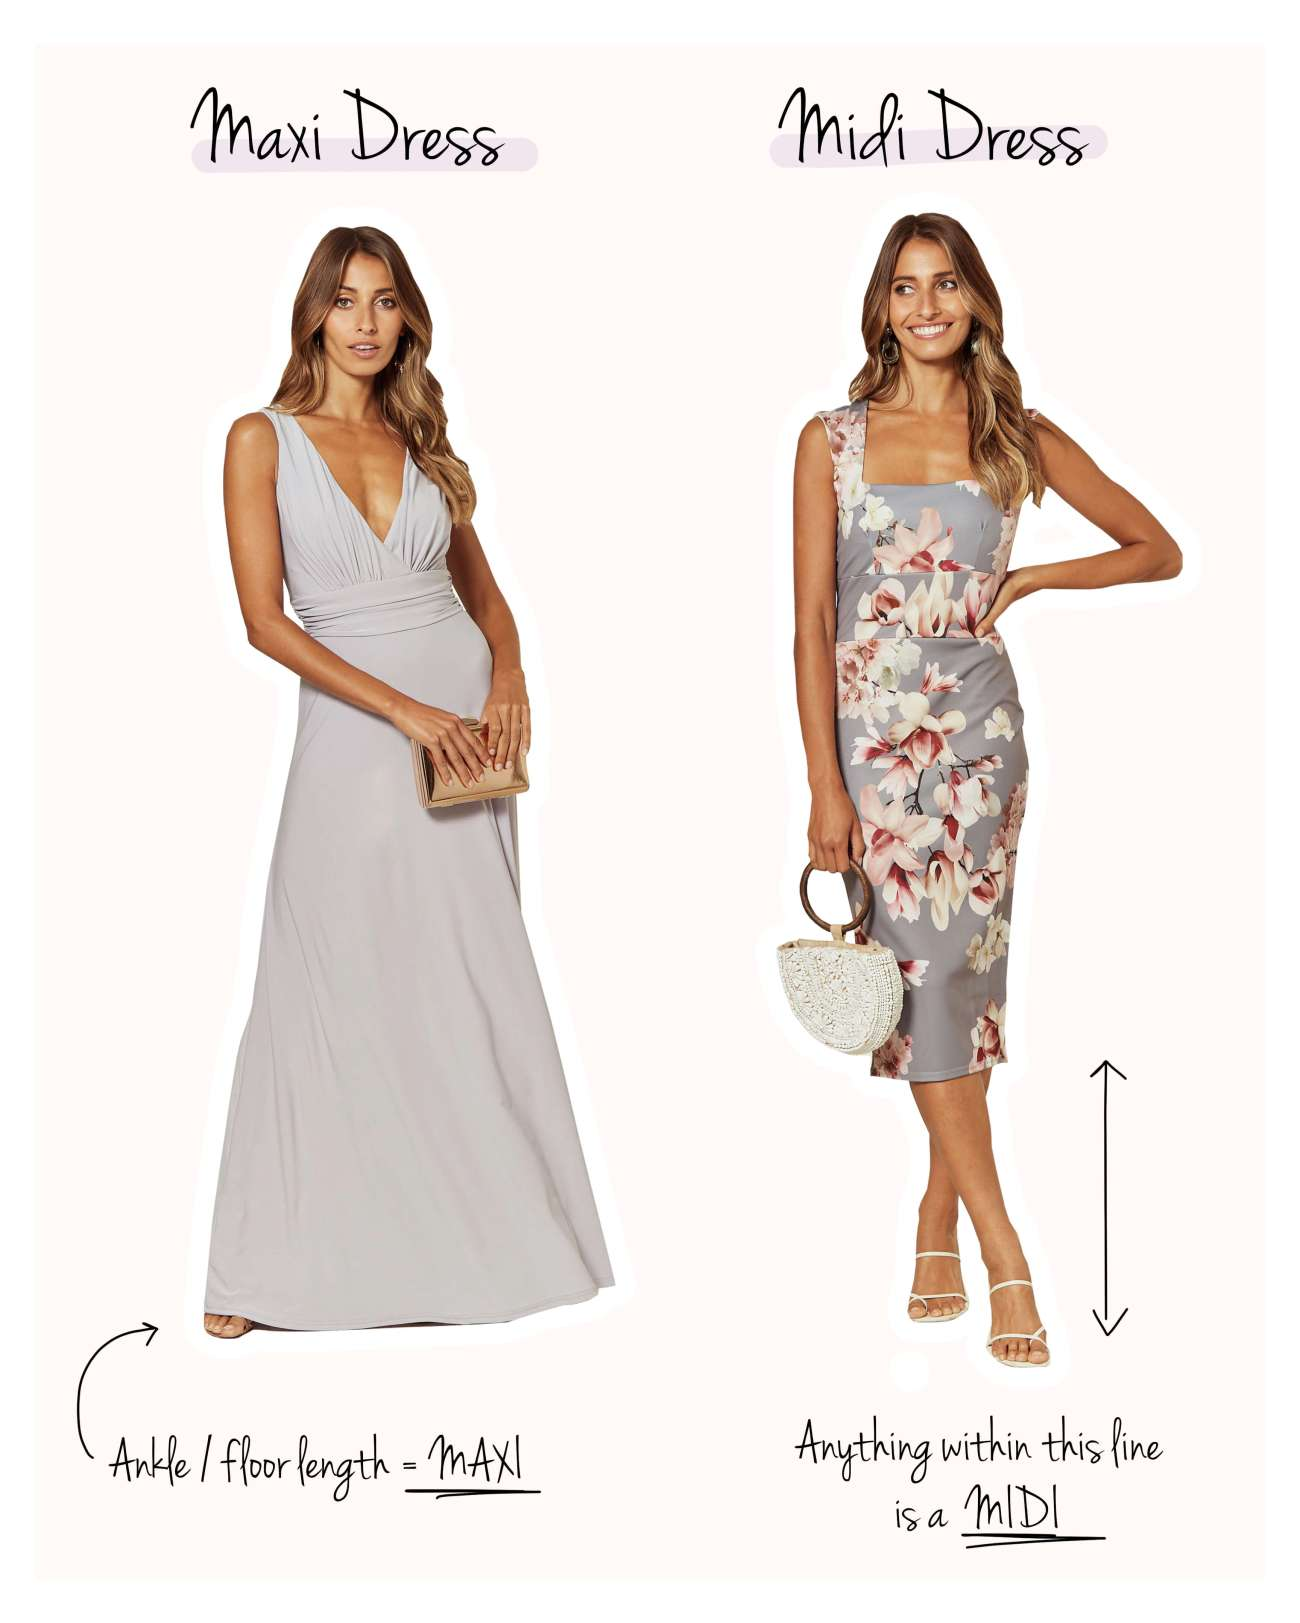 The Difference Between a Maxi Dress and a Midi Dress